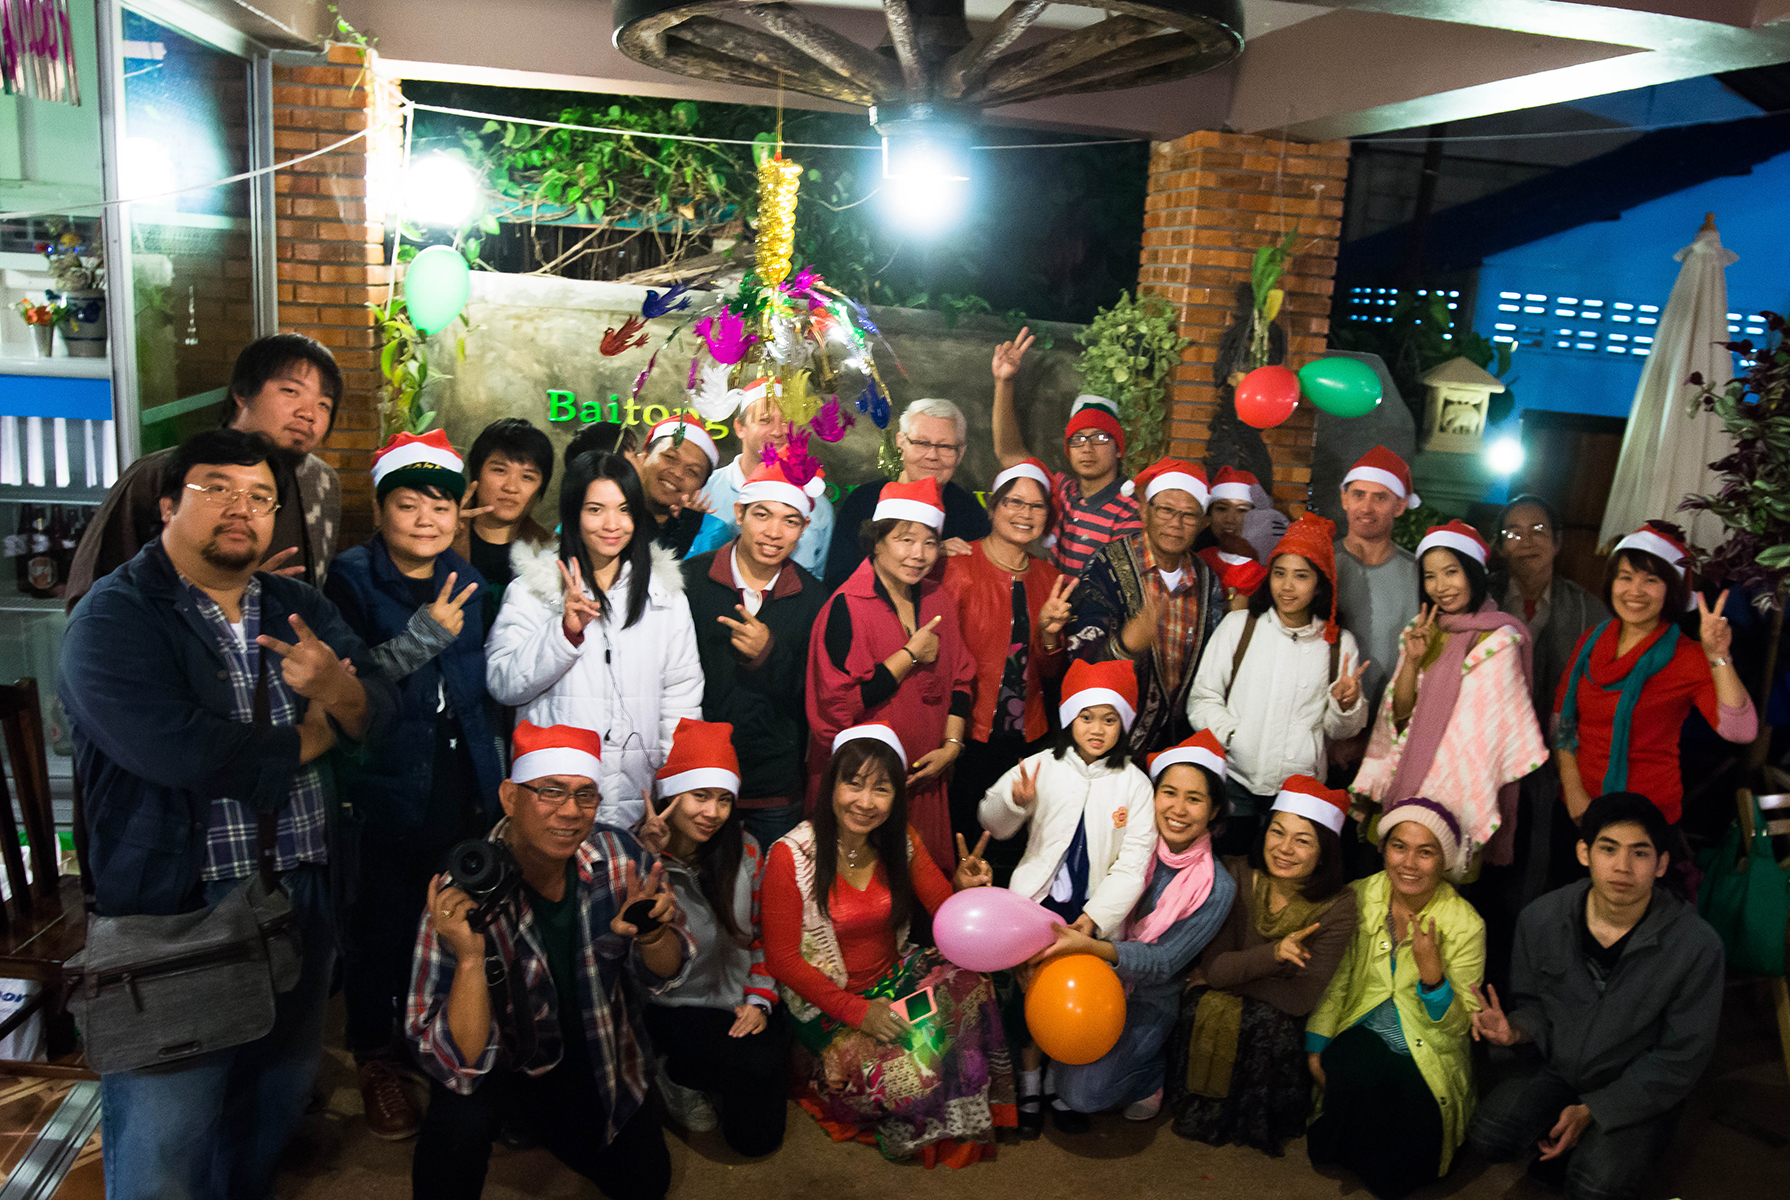 Christmas Party at Baitong